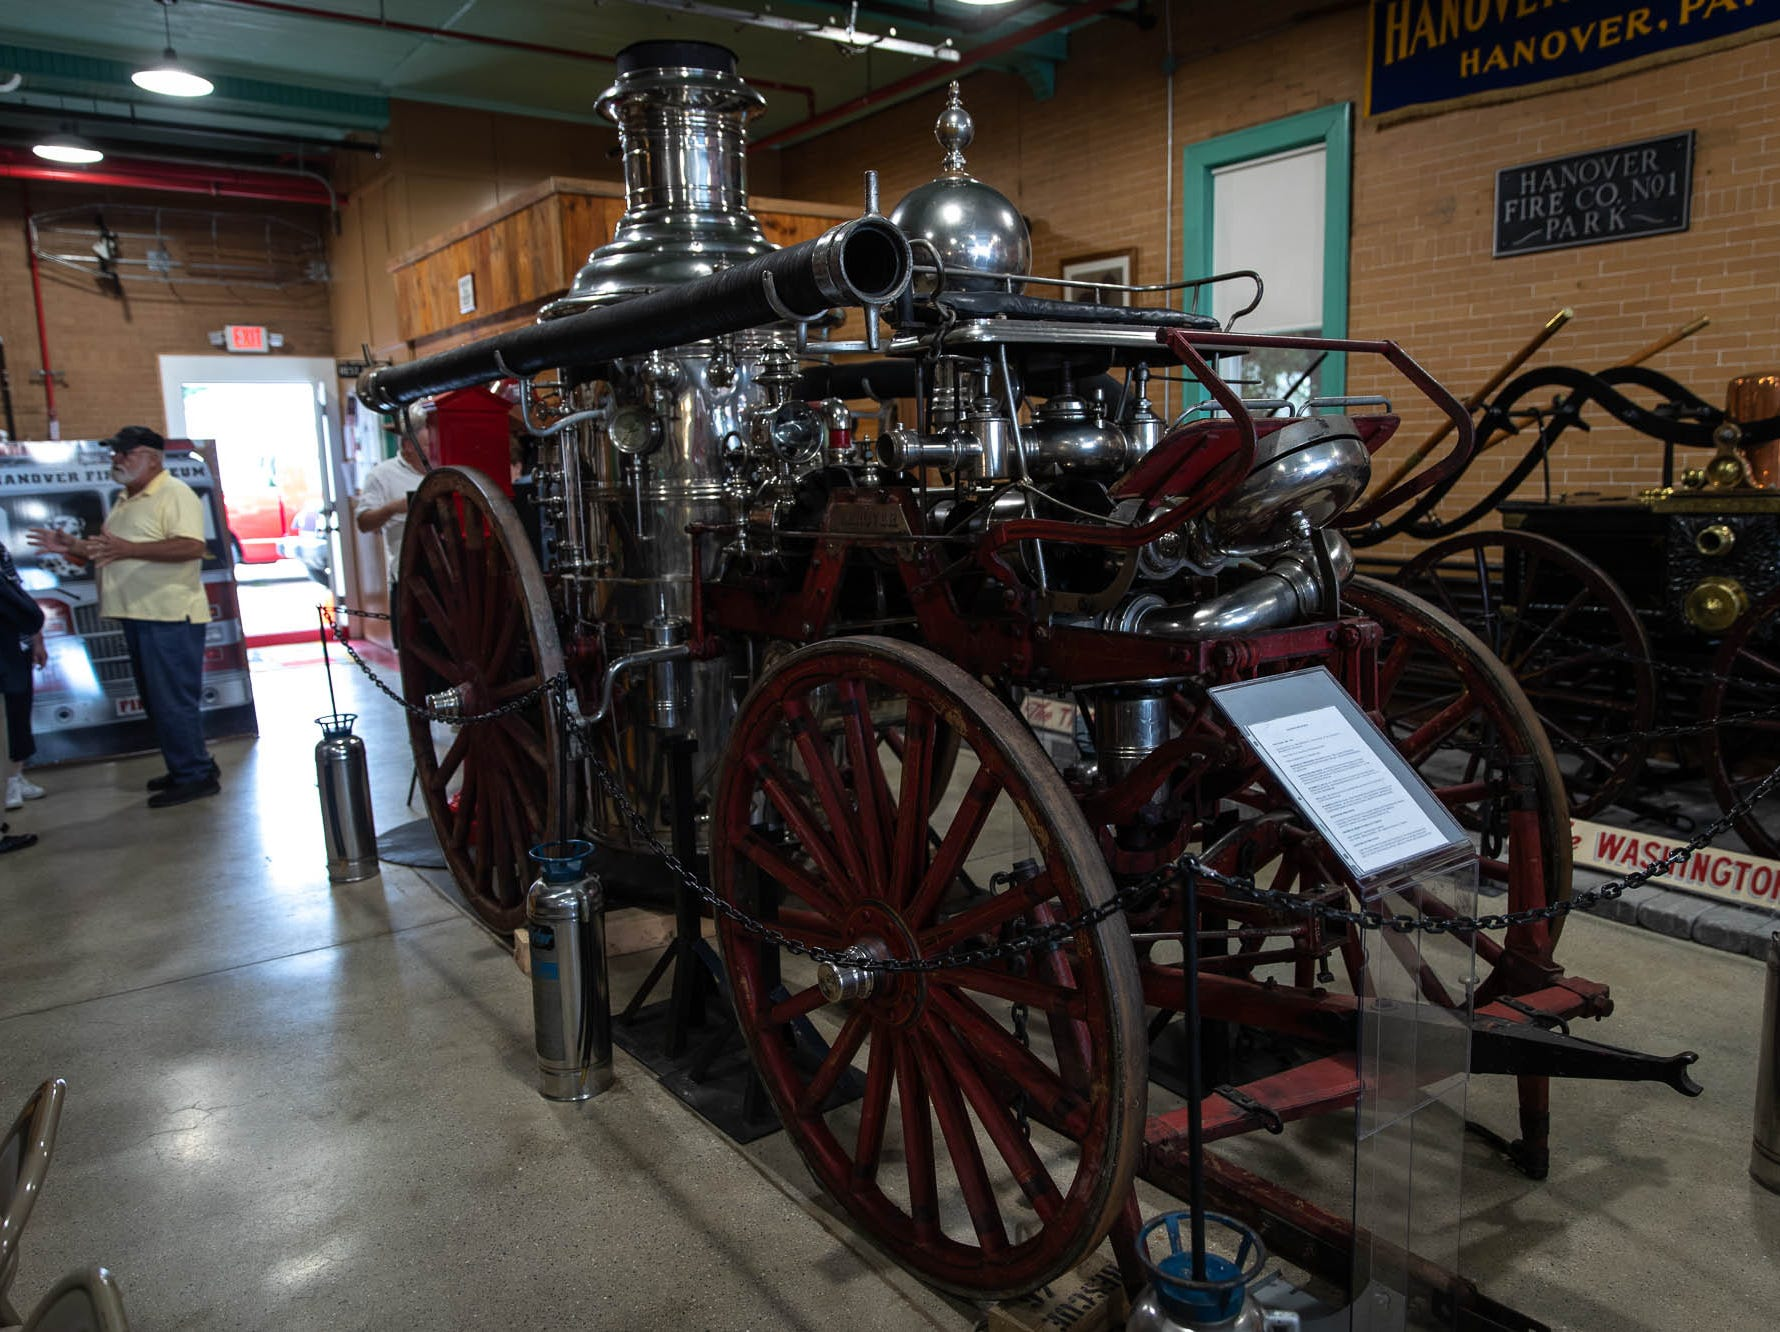 A Silsby Steamer fire apparatus, refurbished in 1887, is seen in the new Greater Hanover Area Fire Museum, Saturday, Sept. 1, 2018, in Hanover.